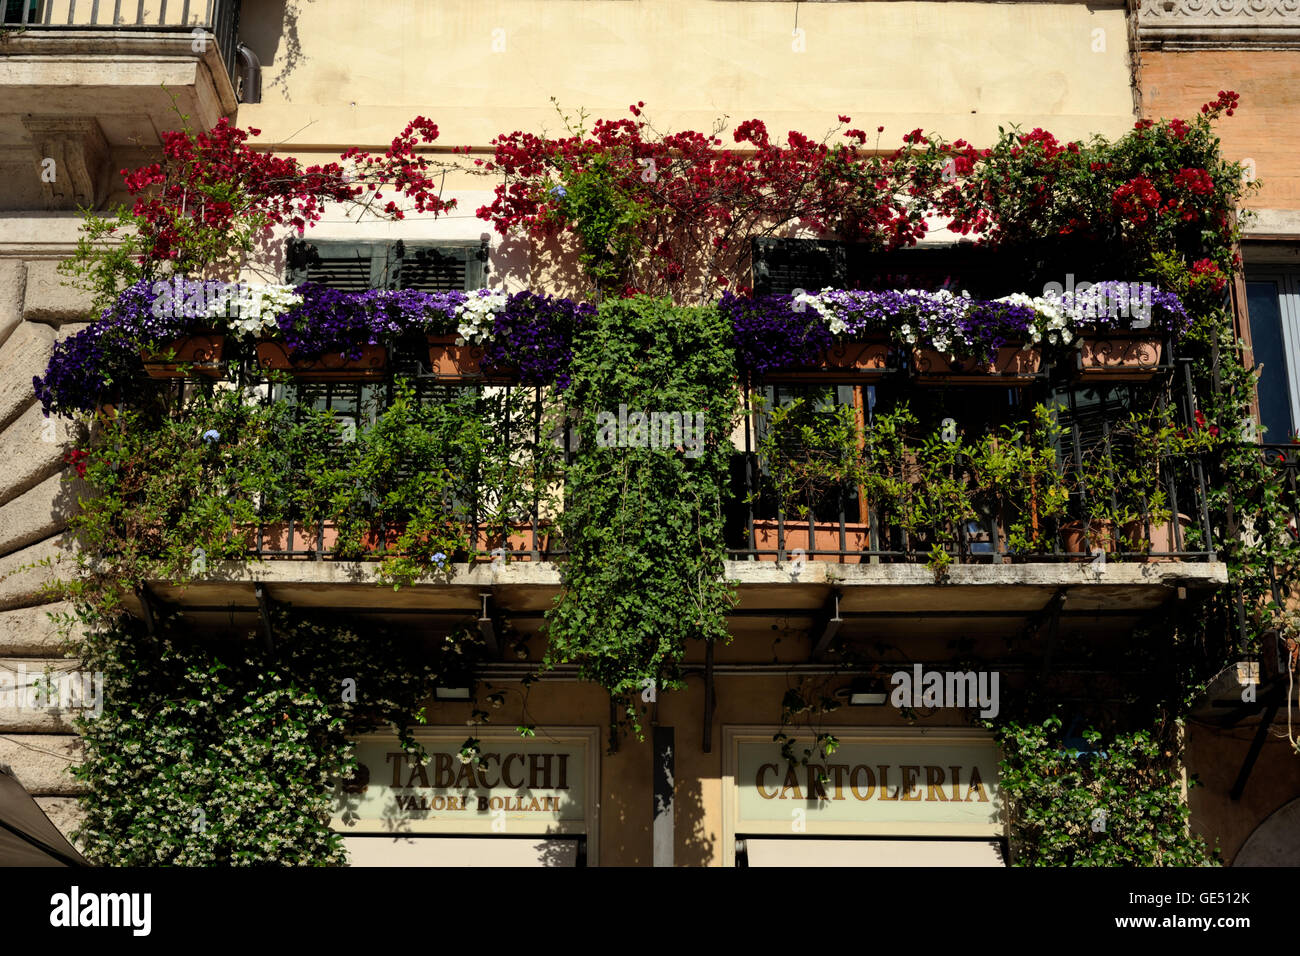 italy, rome, balcony with flowers - Stock Image